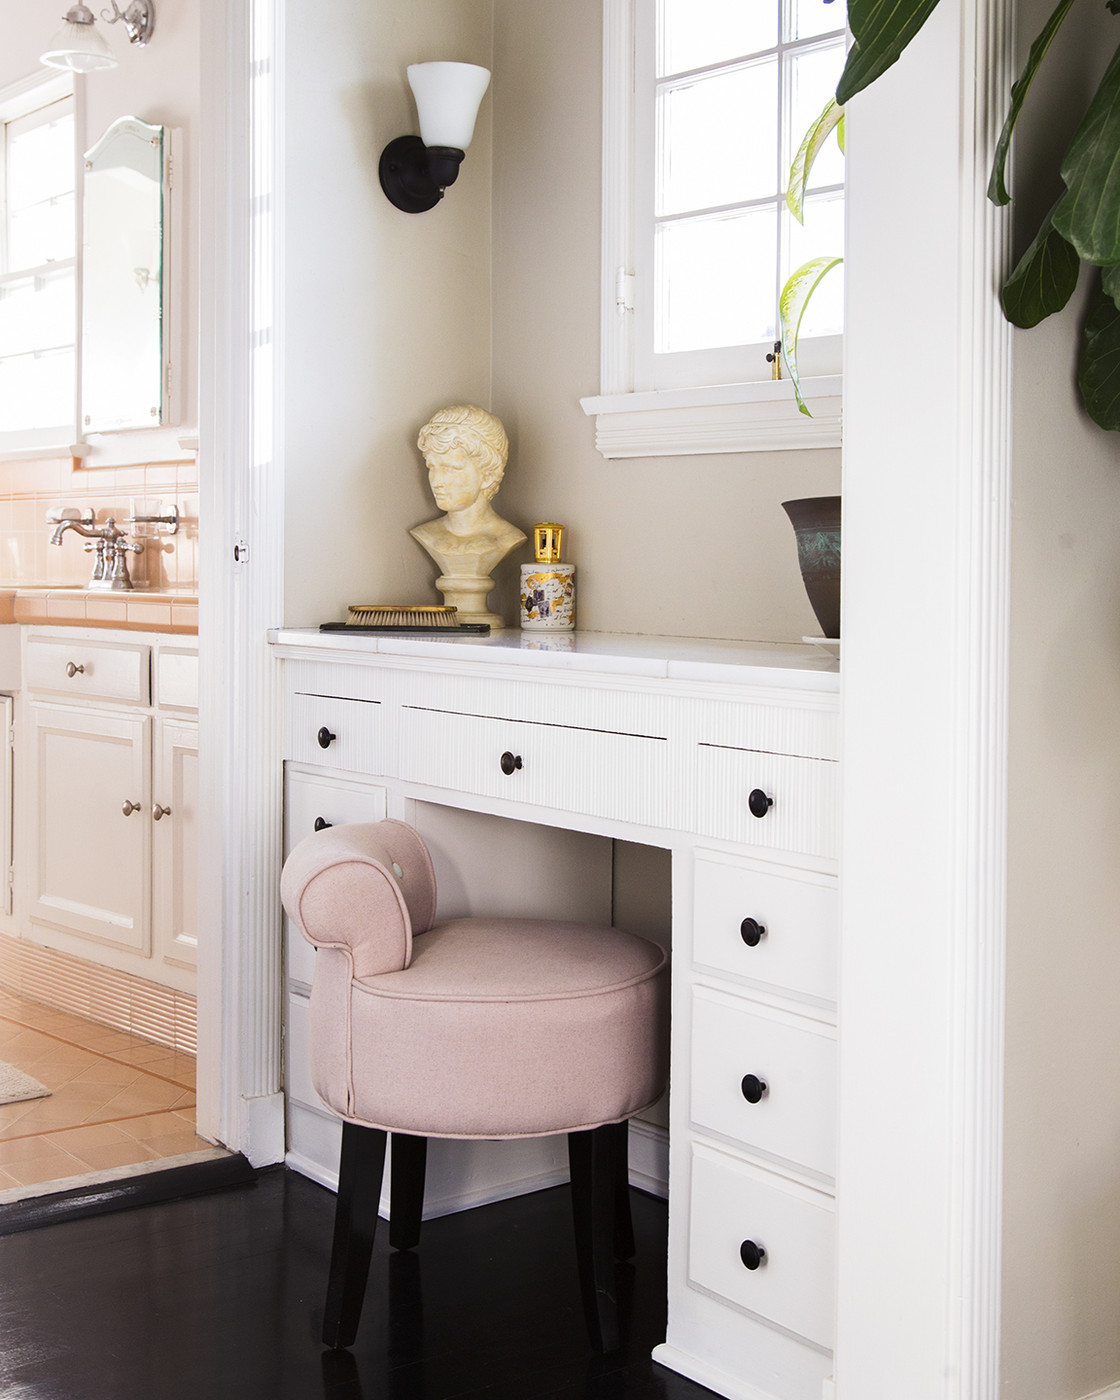 Built-in vanity area with a cusioned stool